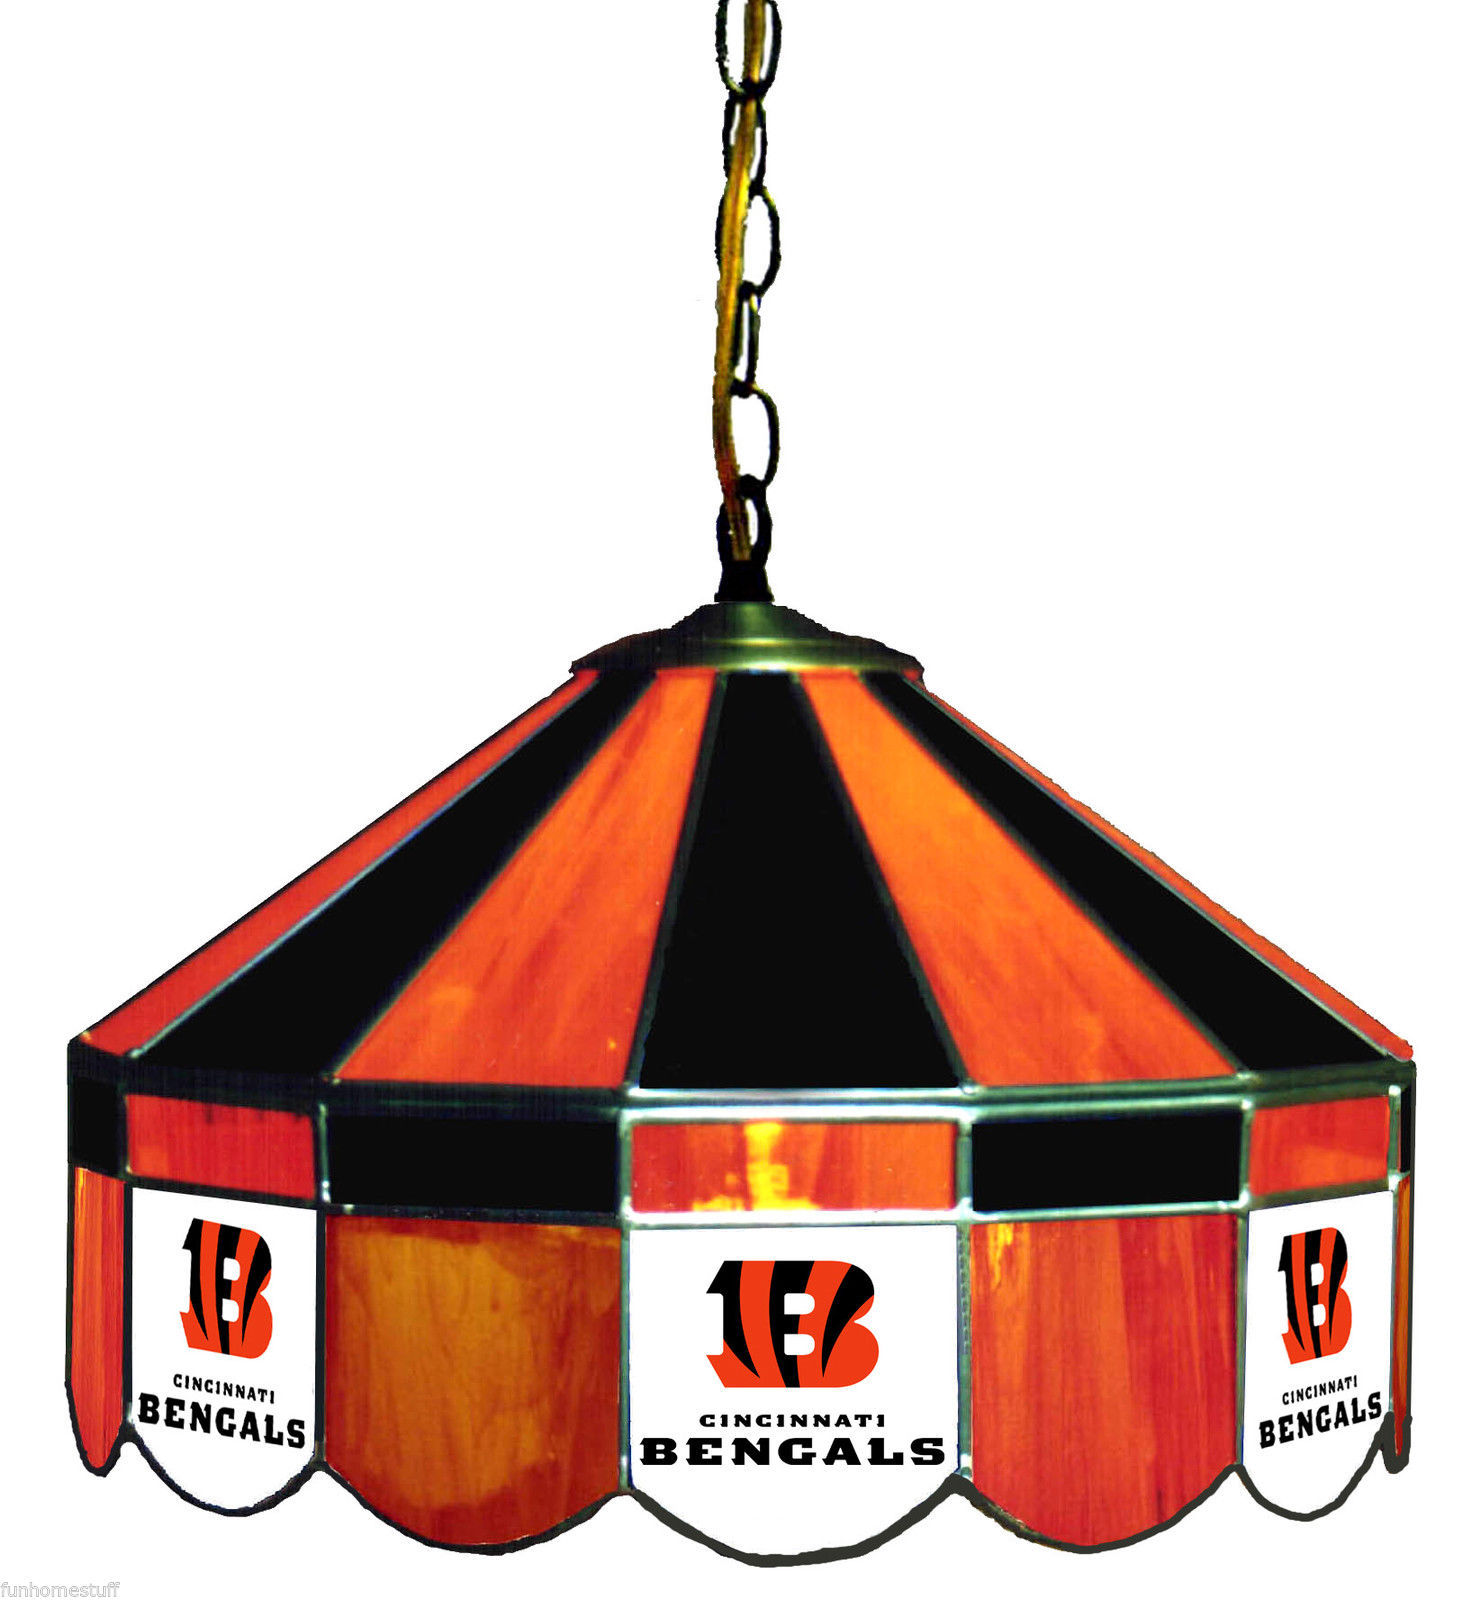 Cincinnati bengals nfl 16 stained glass hanging lamp home bar pub cincinnati bengals nfl 16 stained glass hanging lamp home bar pub table light watchthetrailerfo